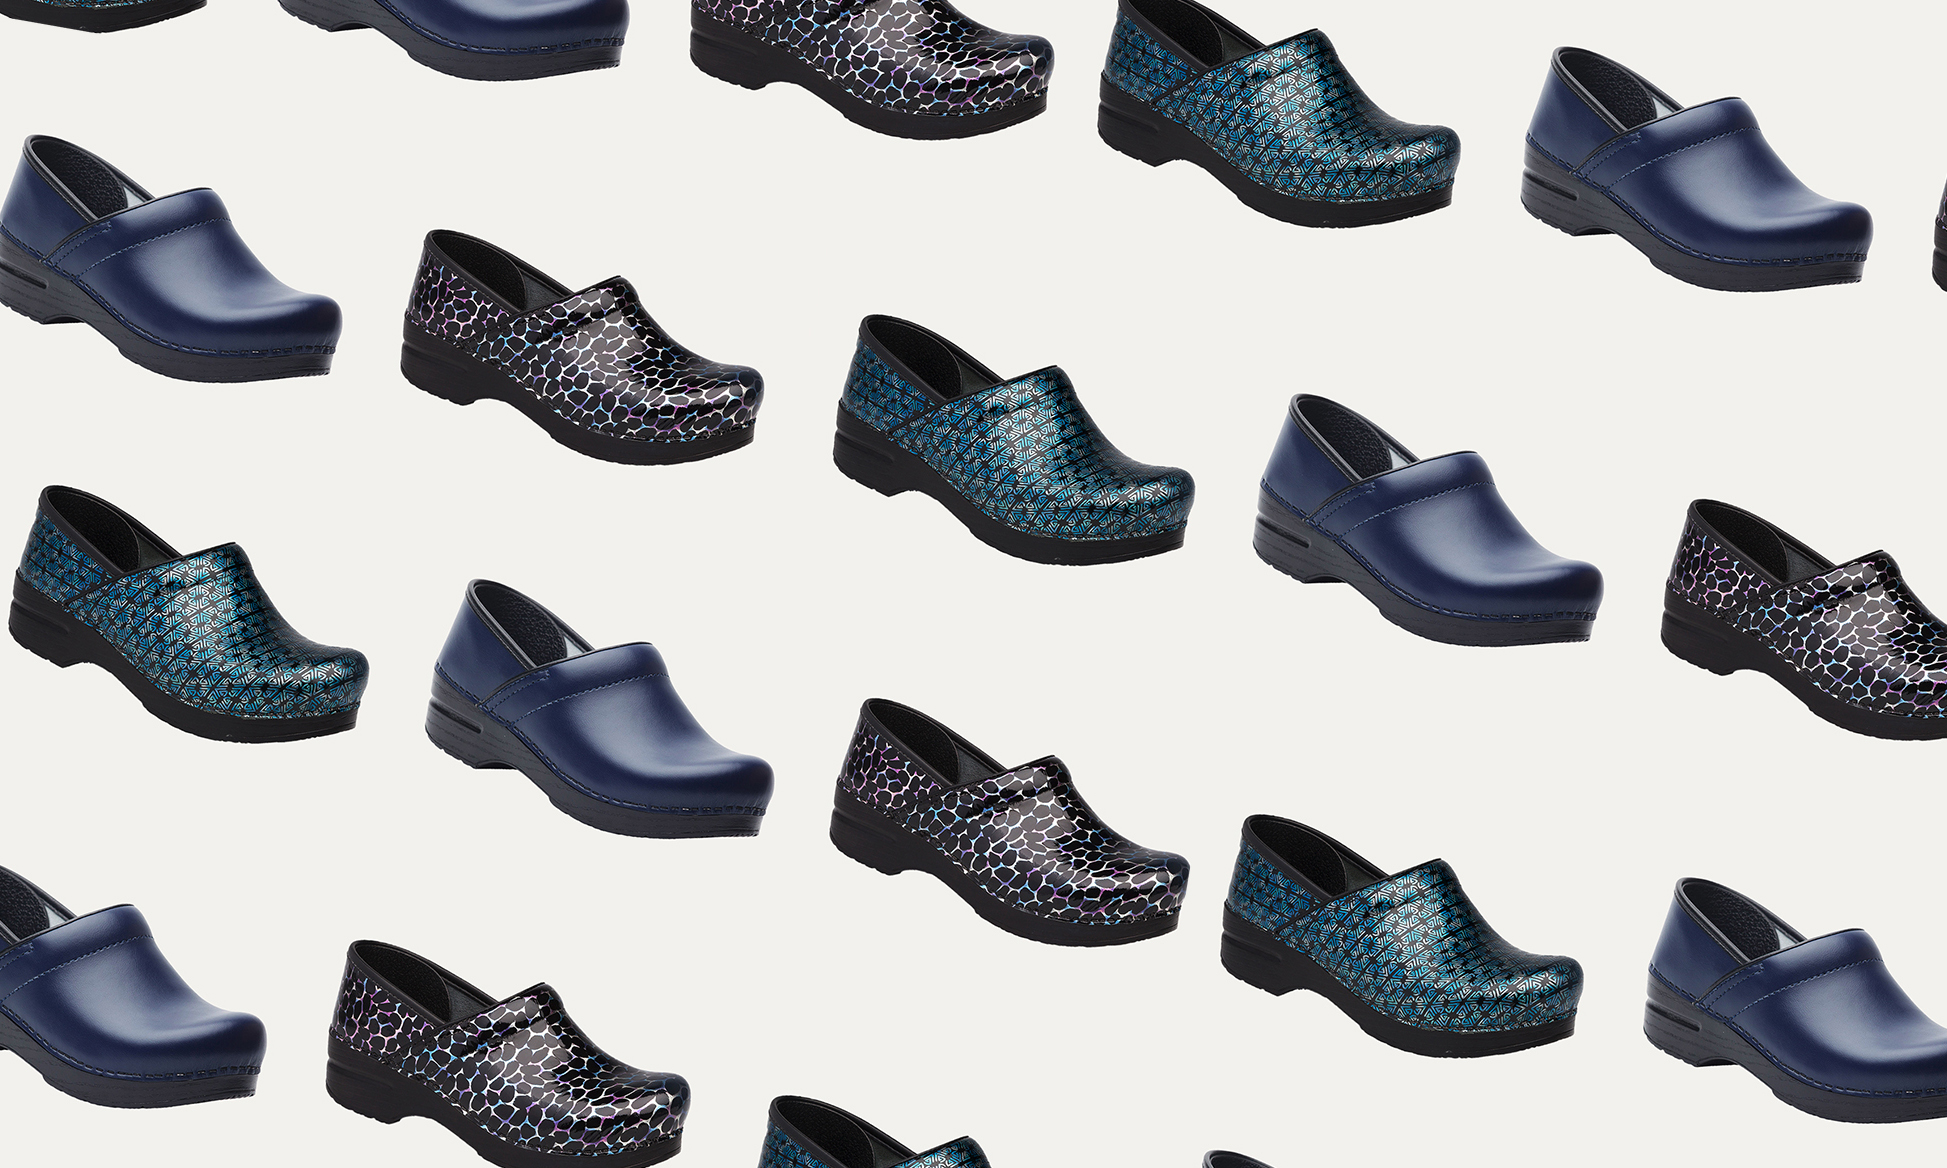 A bunch of Dansko Professional Clogs on a light background